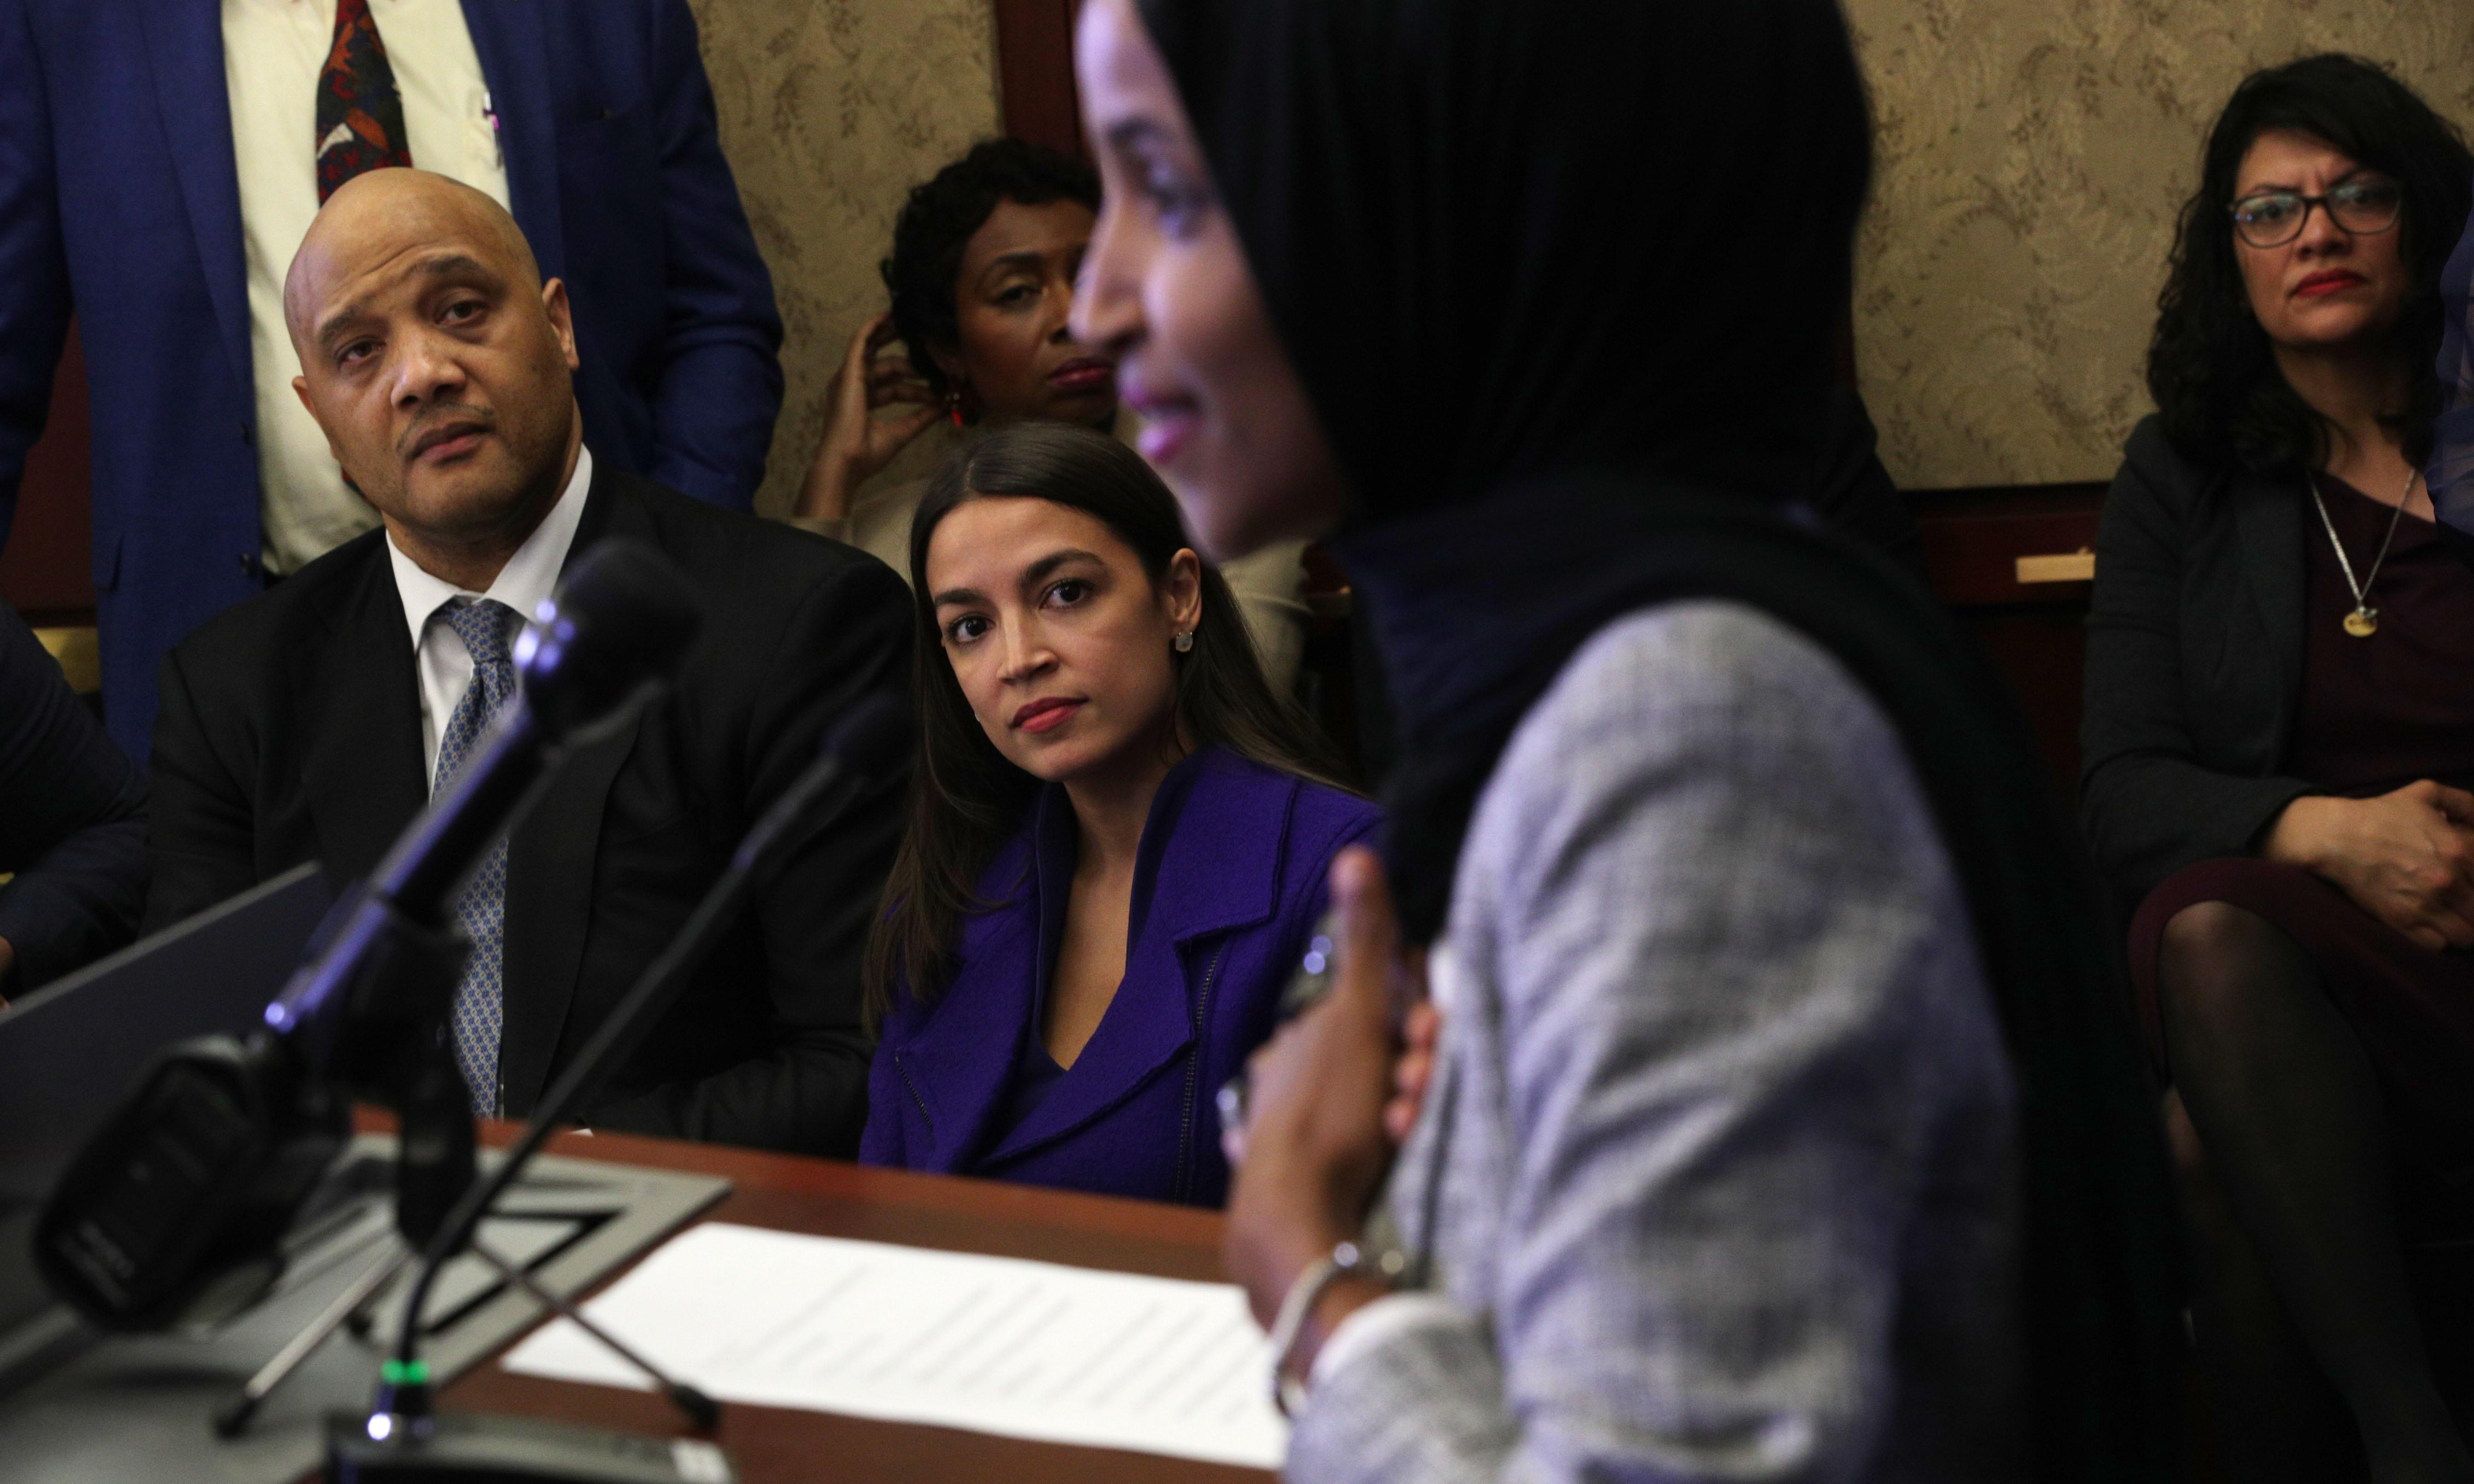 Ilhan Omar breaks Ramadan fast with Democrats in historic first for Congress